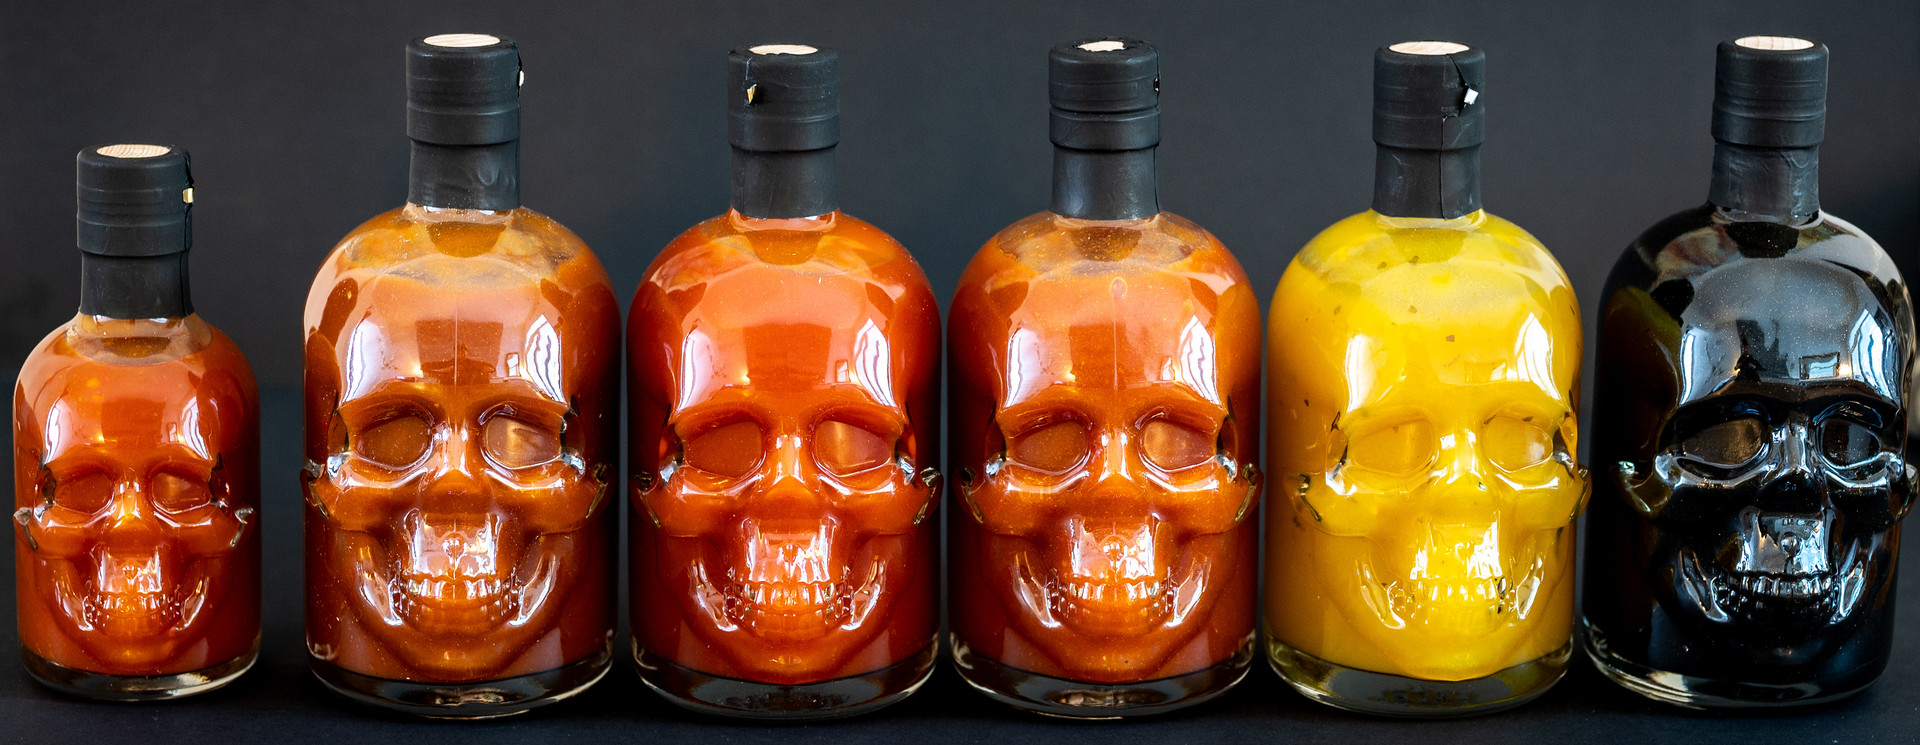 Skull Hot Sauce Collection